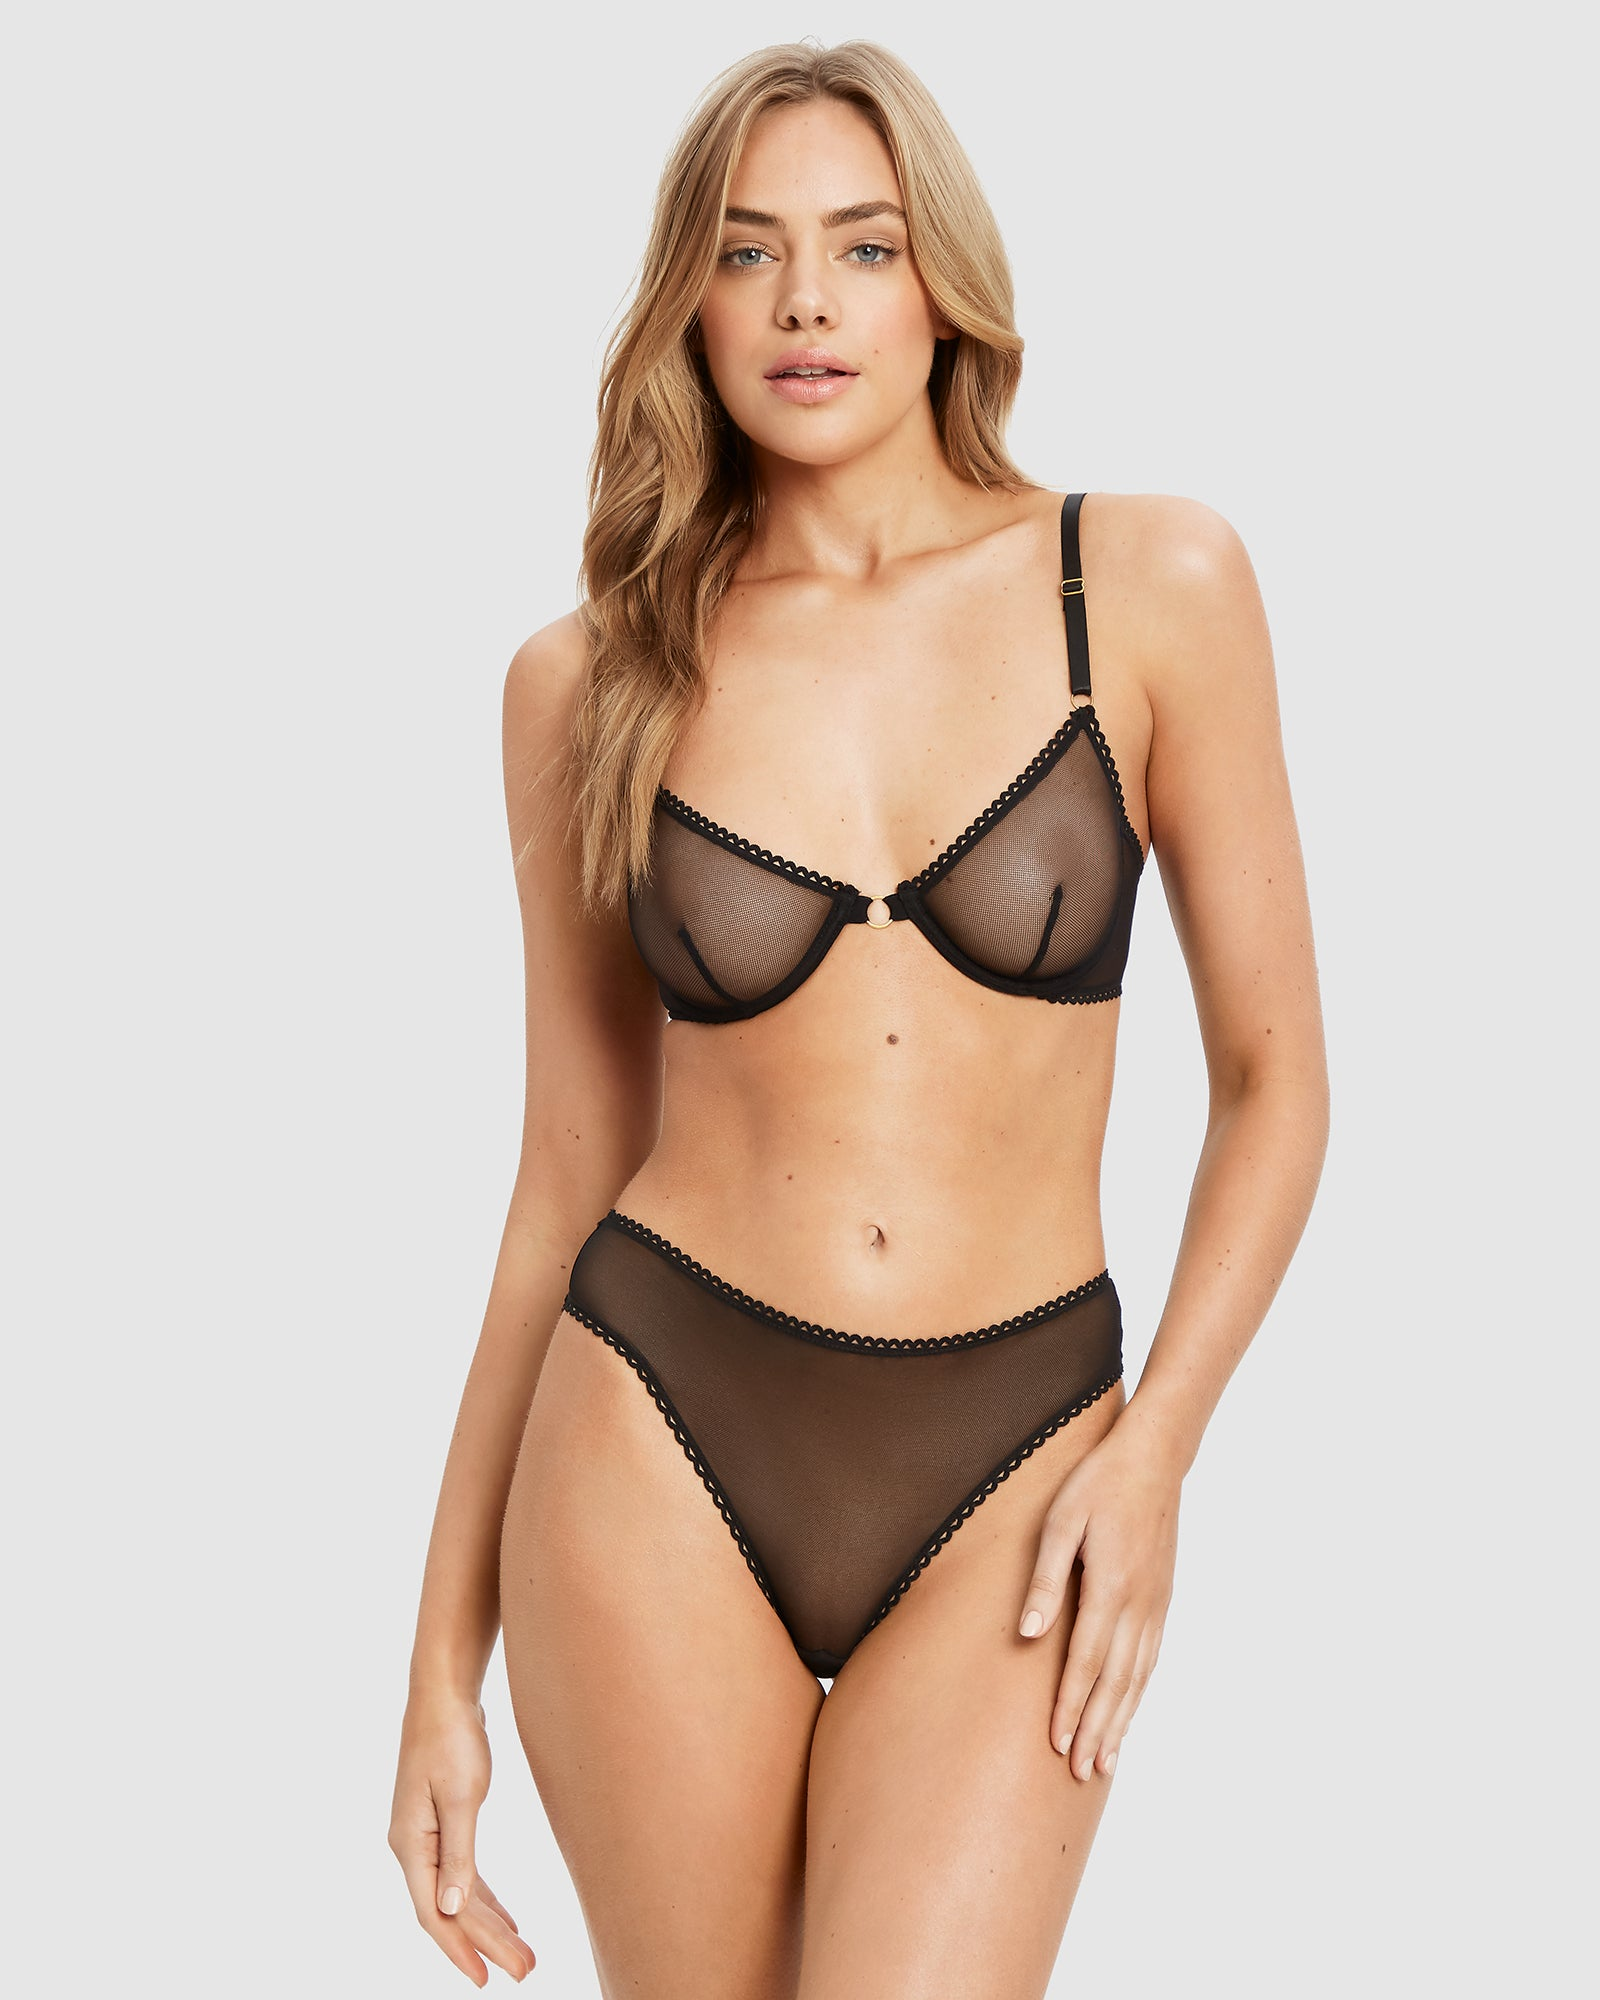 Lover underwire bra and brief set